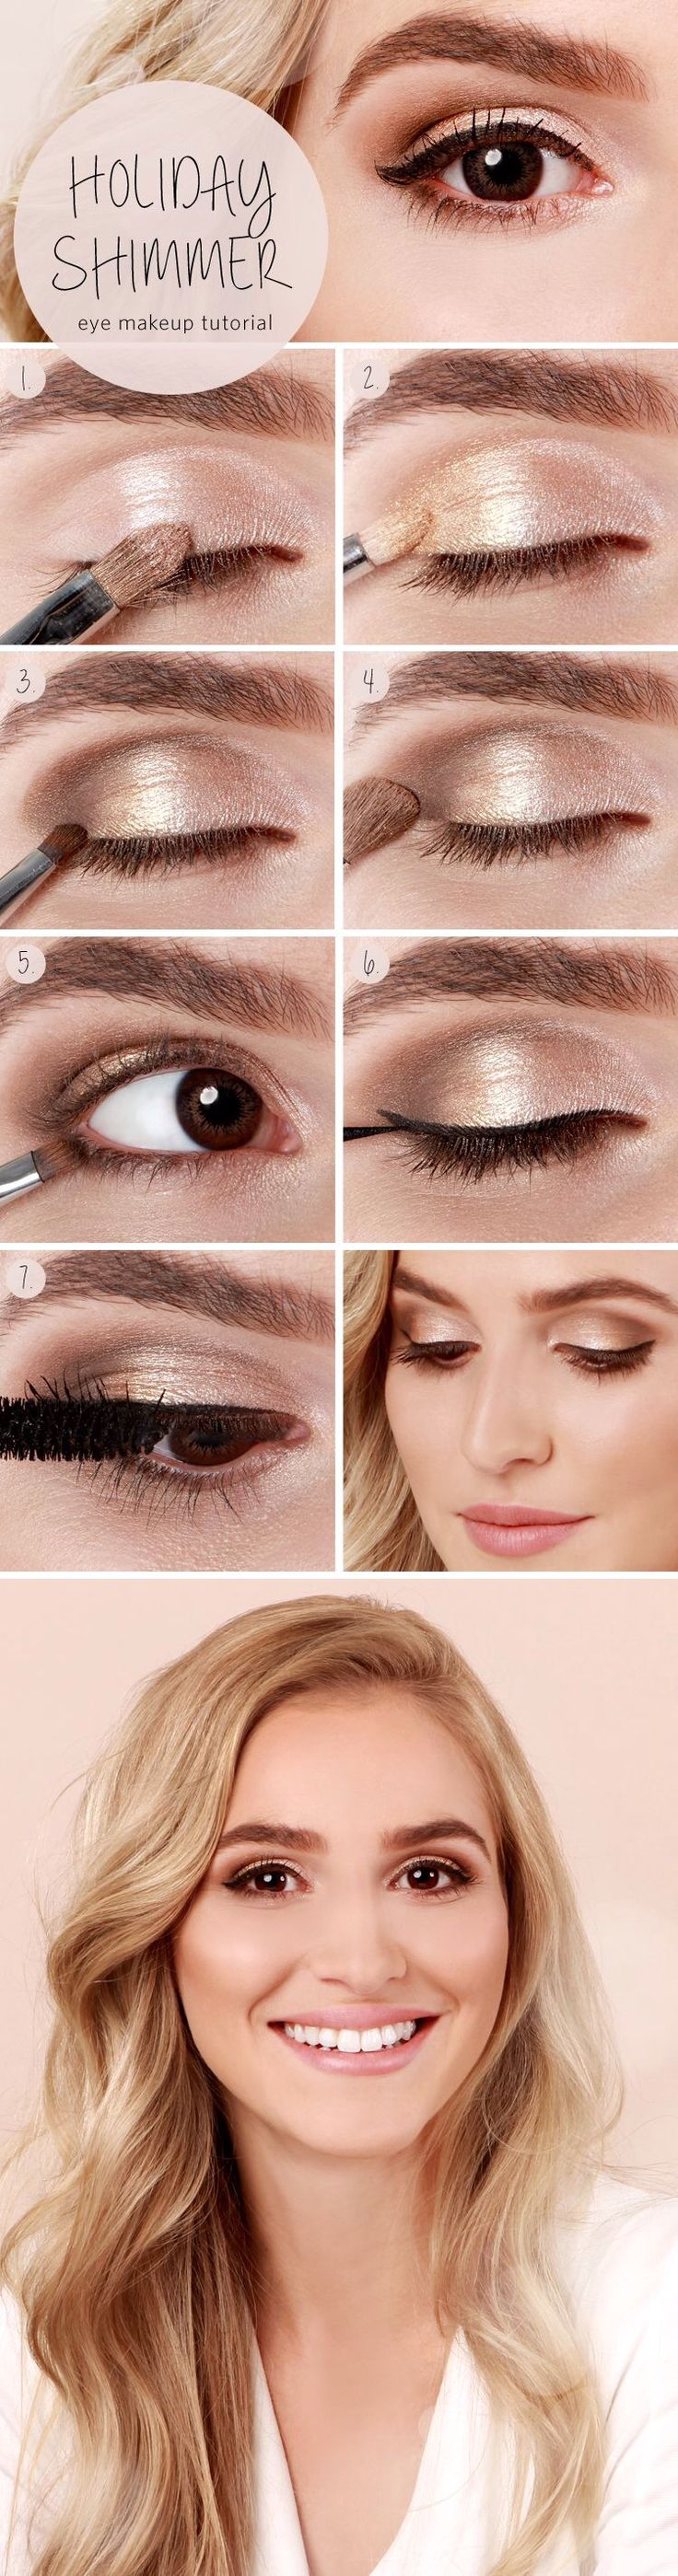 Simple, natural holiday shimmer eye makeup